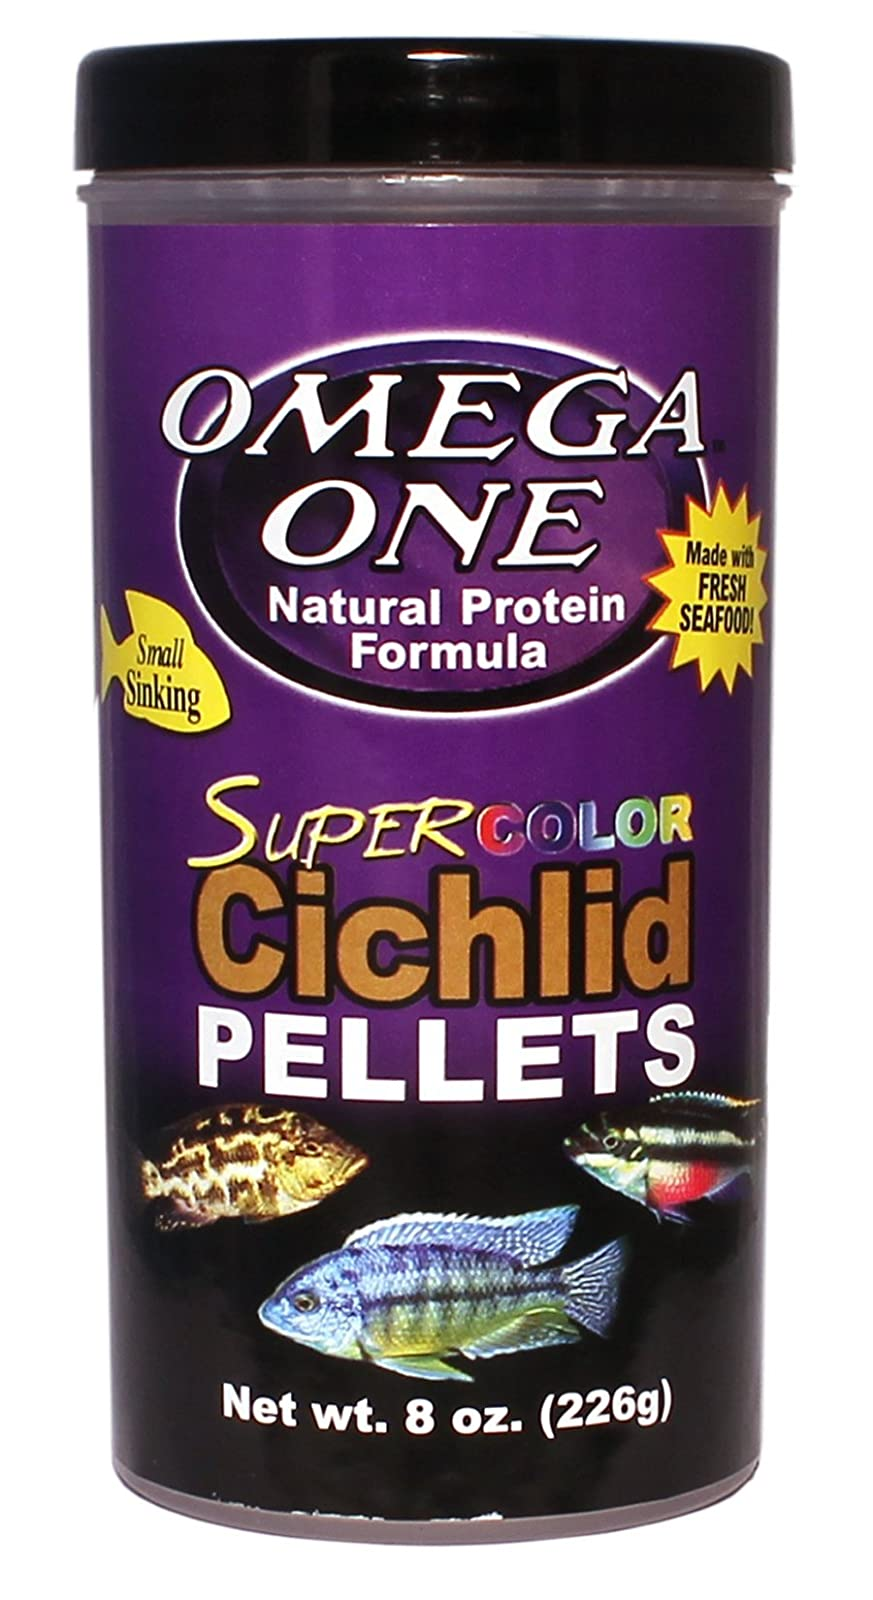 Omega One Super Color Cichlid Small Pellets 8oz 53432 - 1